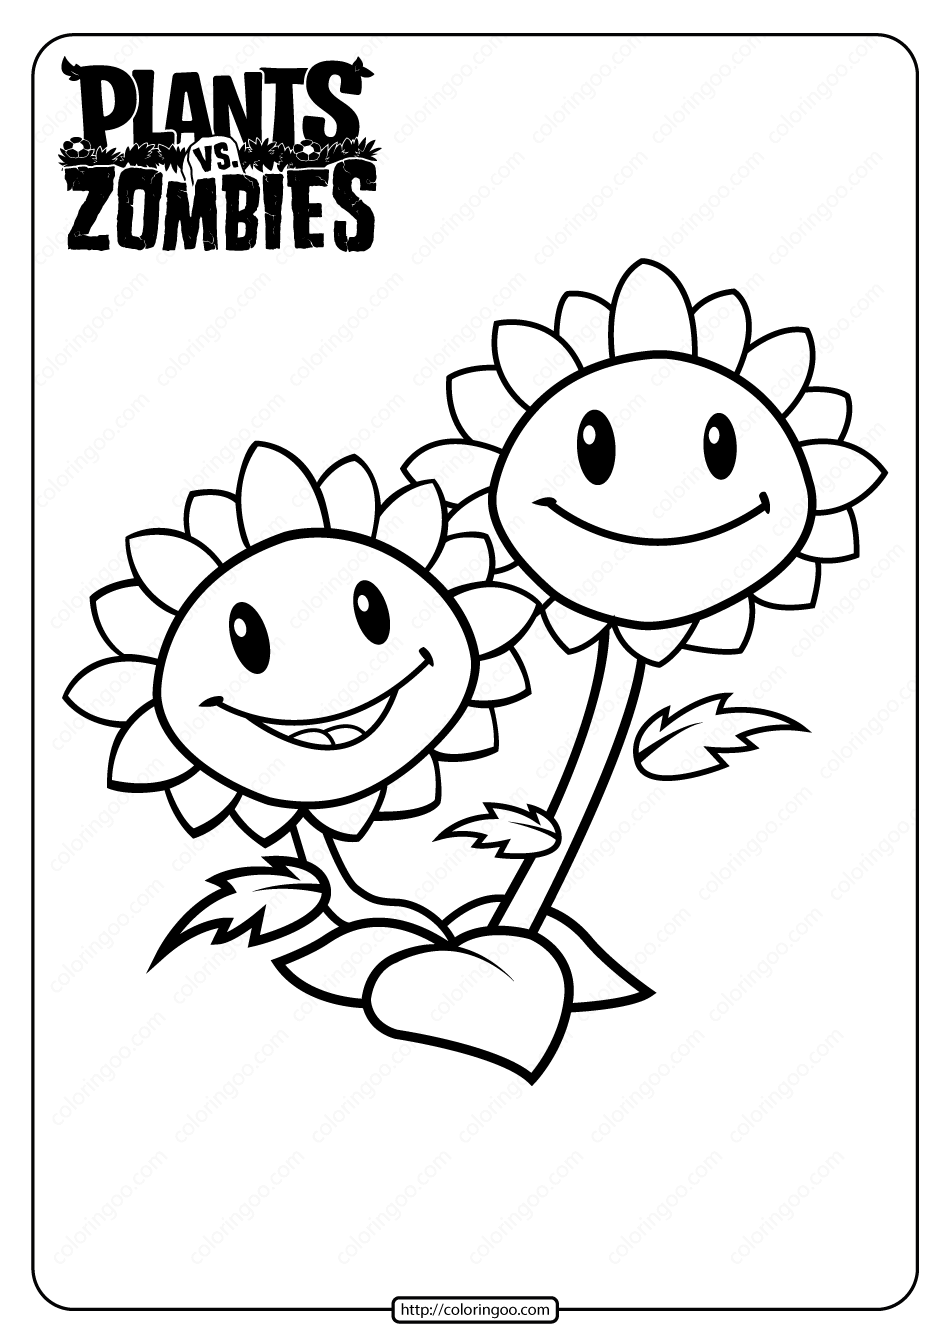 Plants vs Zombies Twin Sunflower Coloring Page